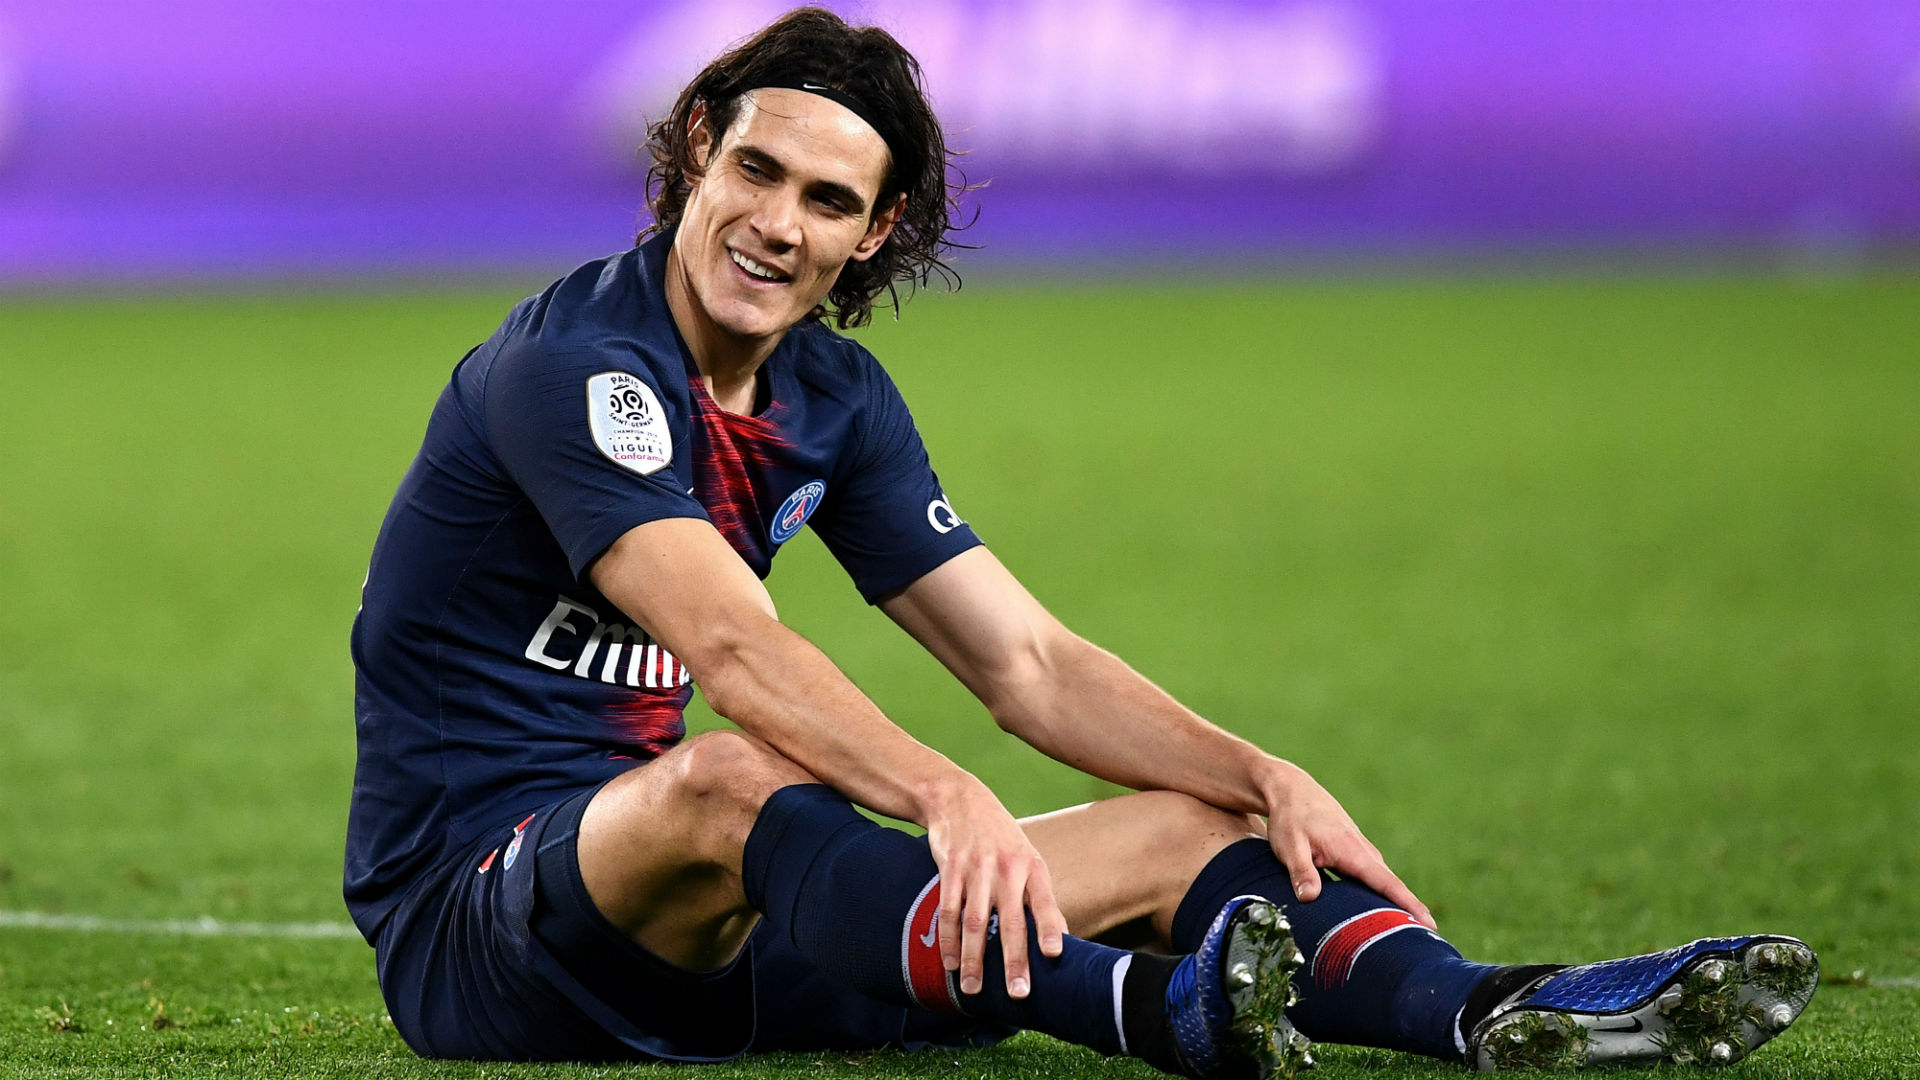 PSG striker Cavani could miss Man Utd first leg